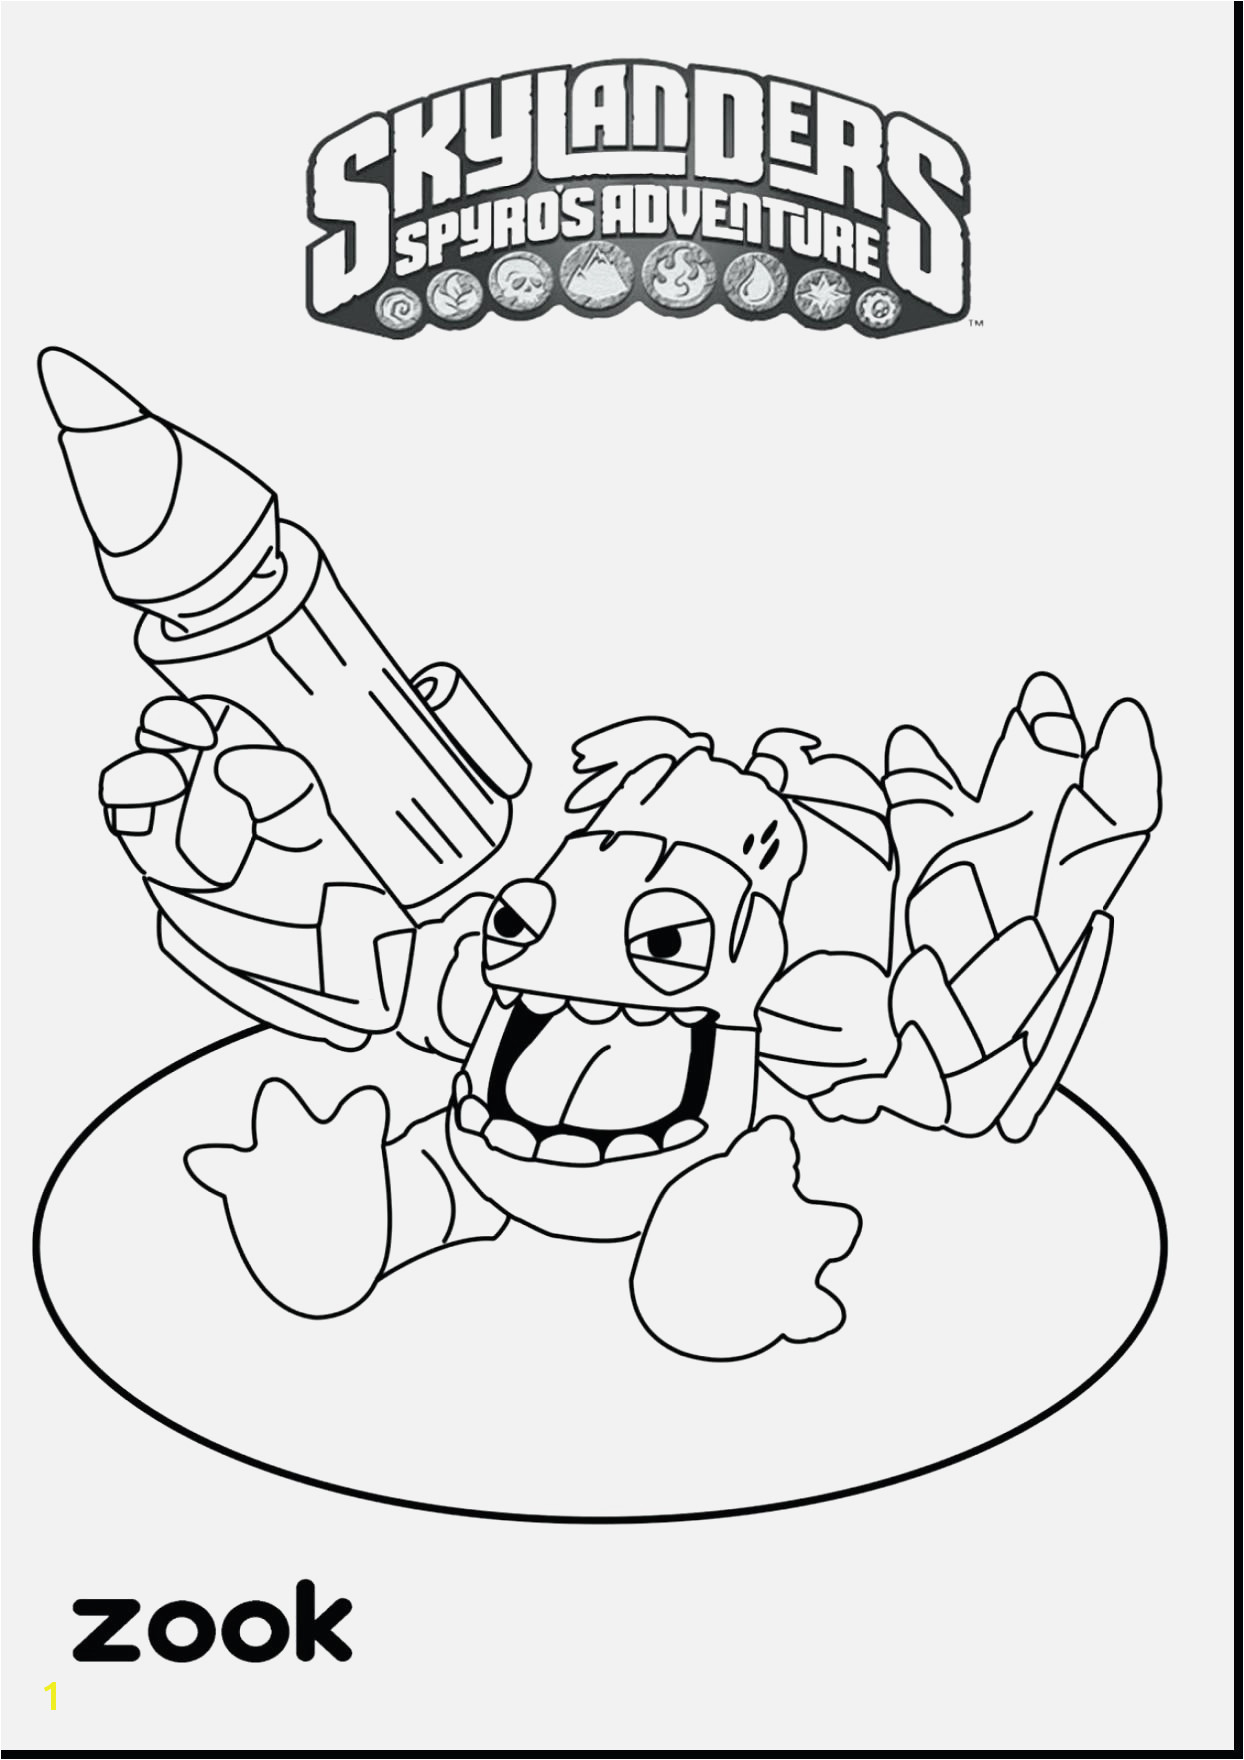 Geometric Coloring Pages Best Easy Cartoon Coloring Pages · Geometric Coloring Pages Printable